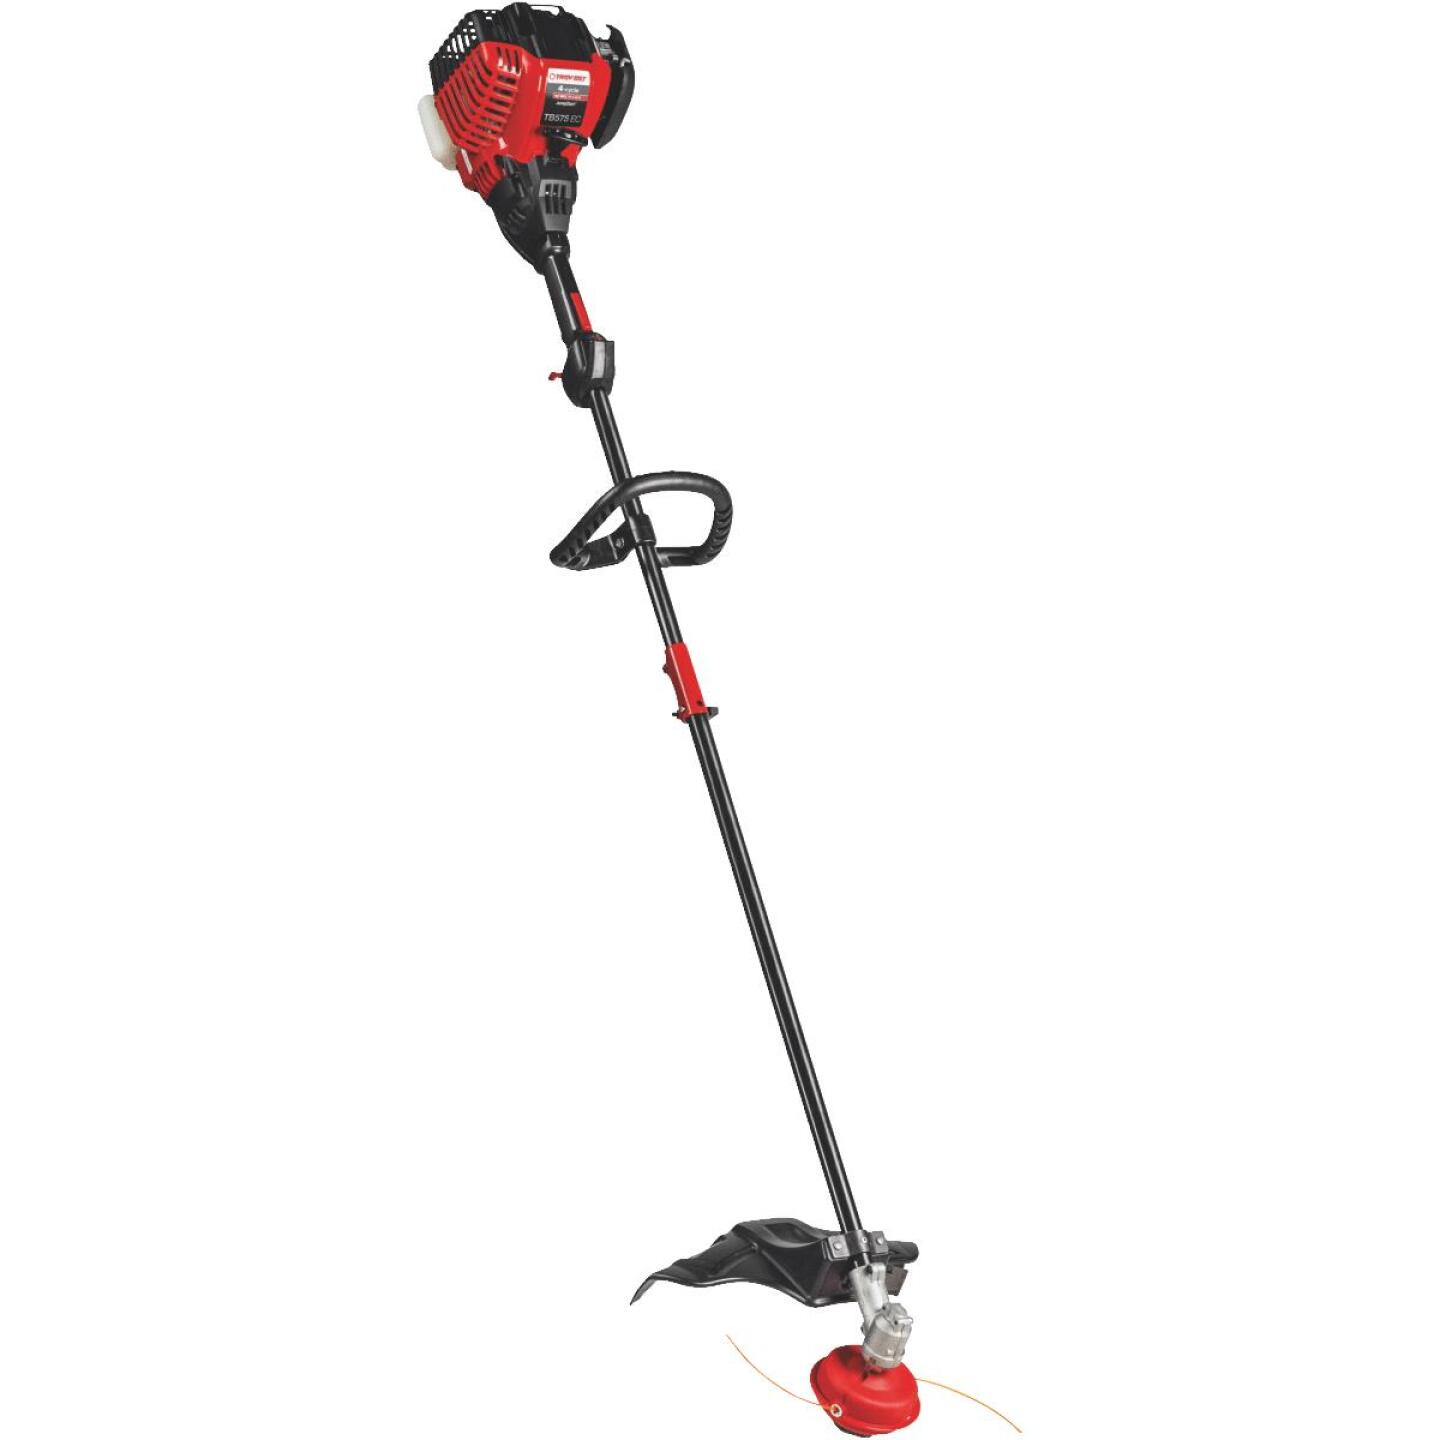 Troy-Bilt TB304S 30cc 4-Cycle Straight Shaft Gas Trimmer Image 2